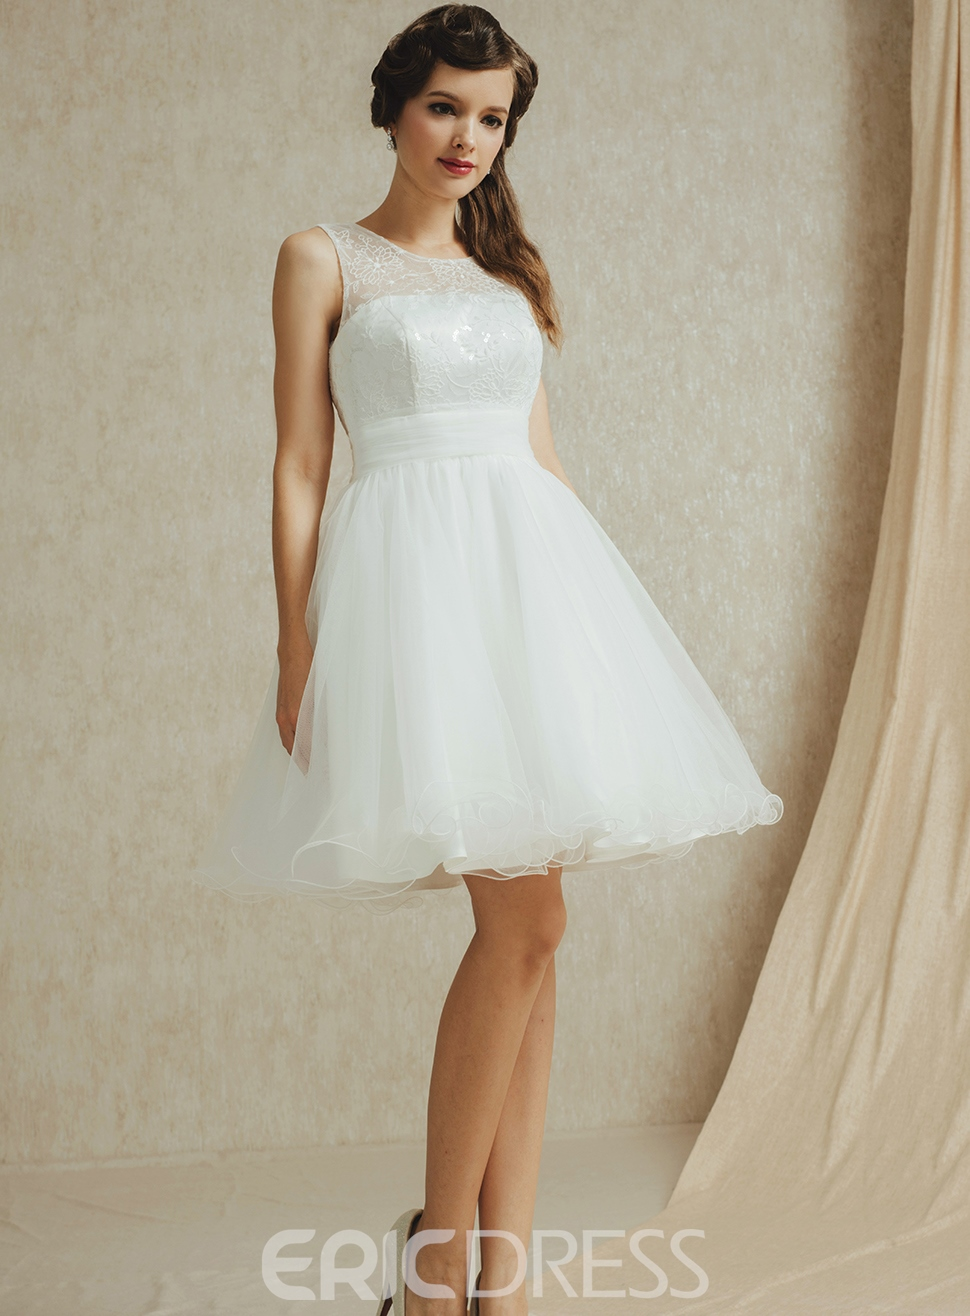 Simple A-Line Jewel Lace Short Bridesmaid Dress